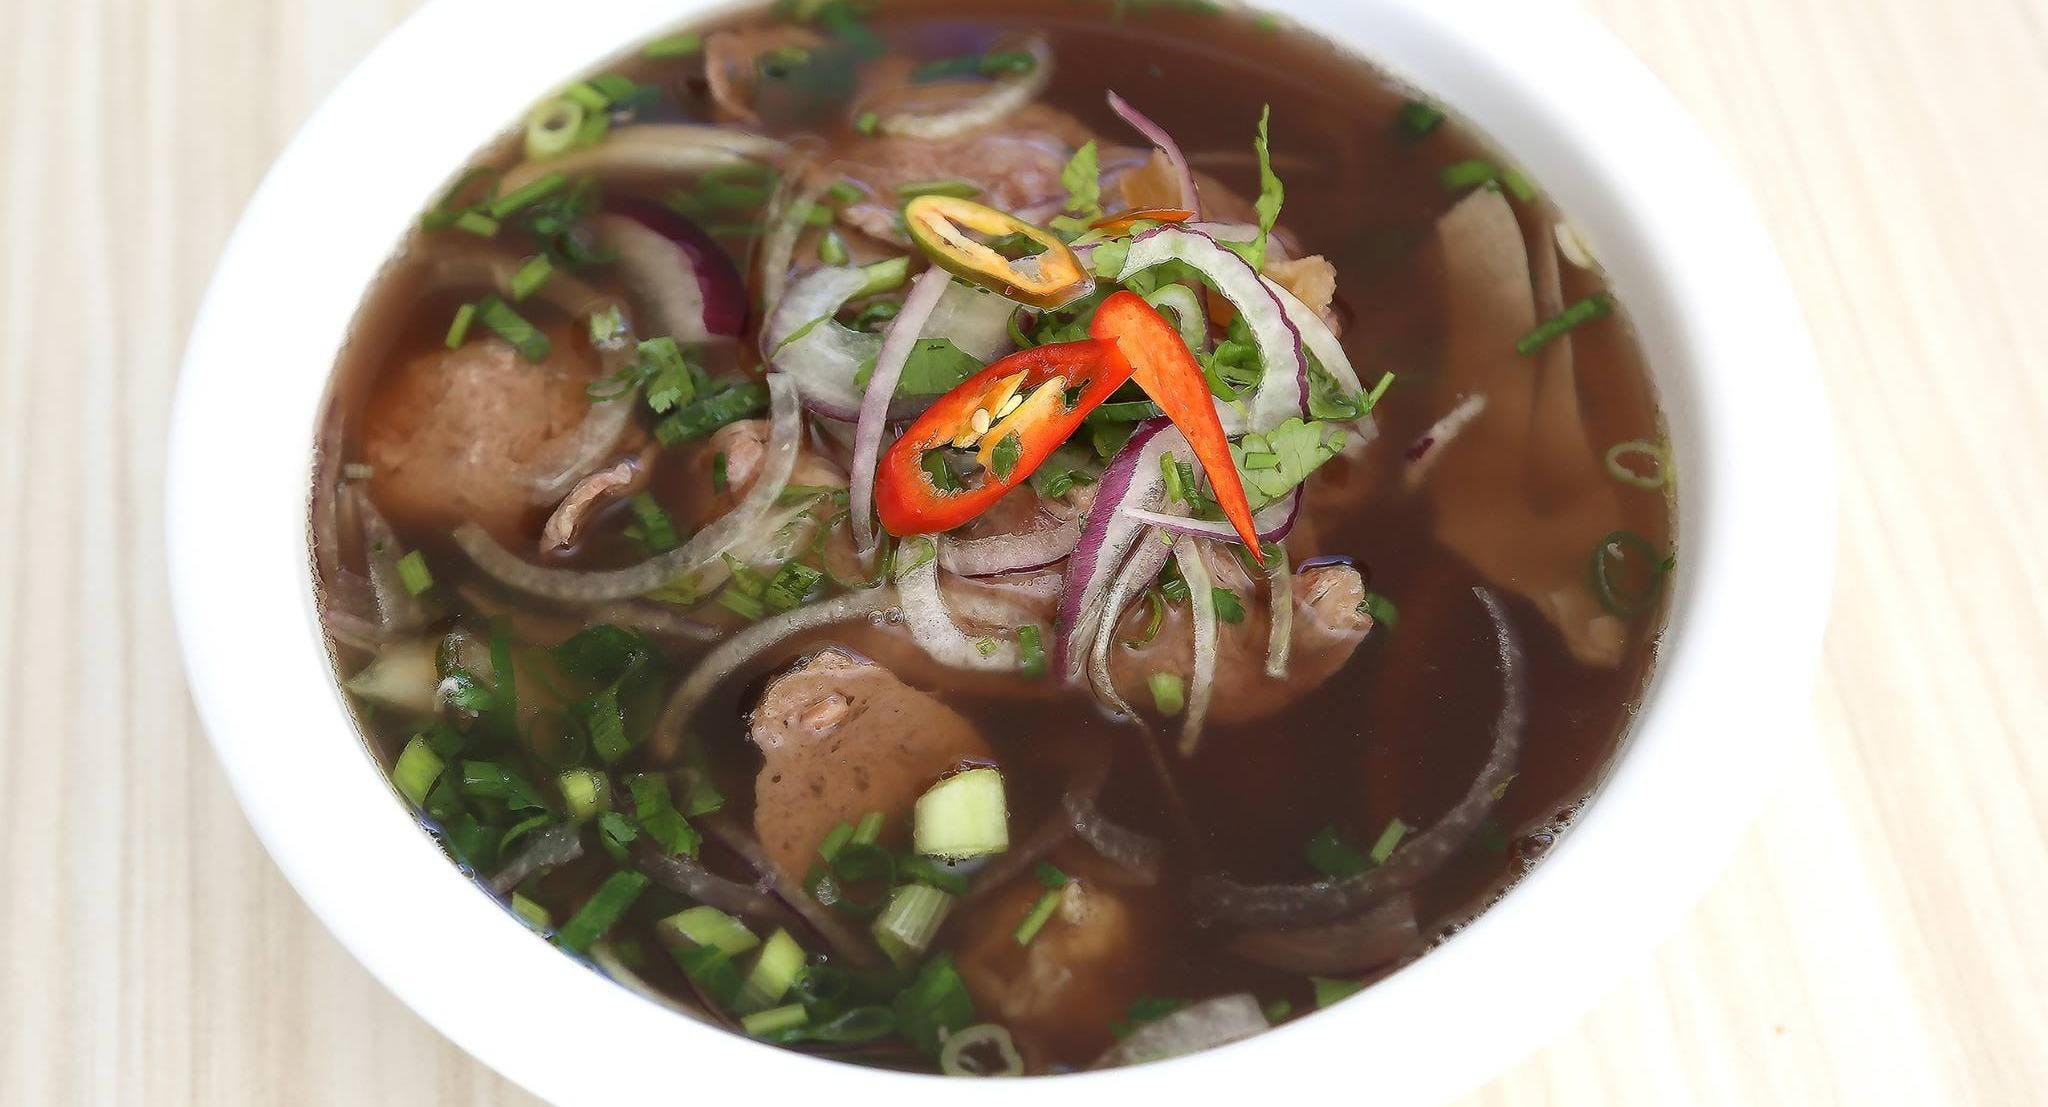 Phong Dinh Noodle House